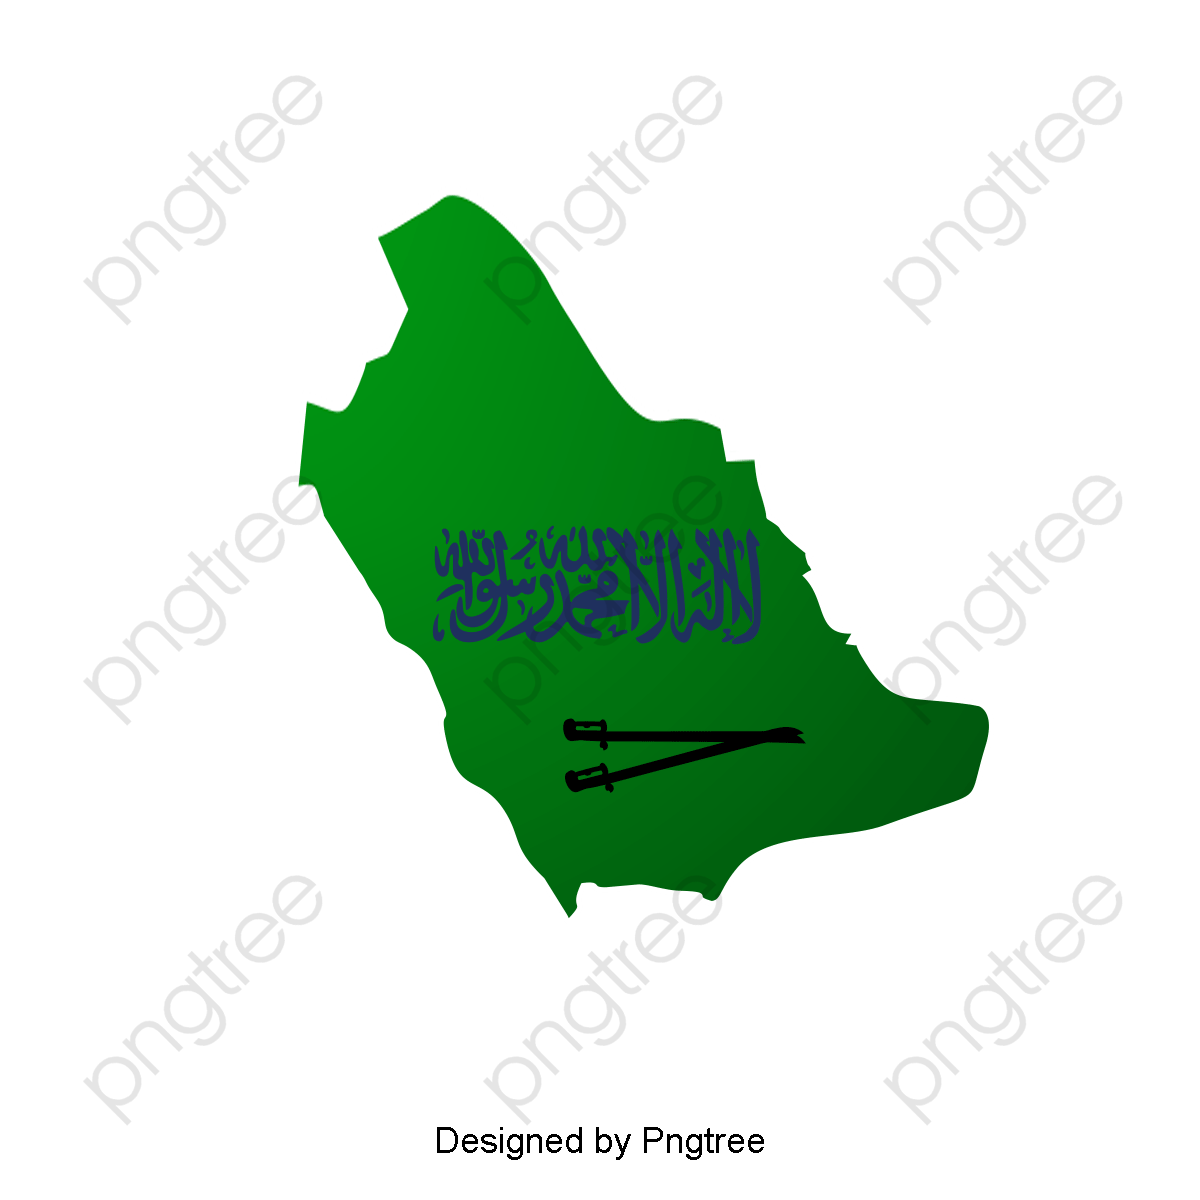 Transparent saudi arabia national day map PNG Format Image With Size.